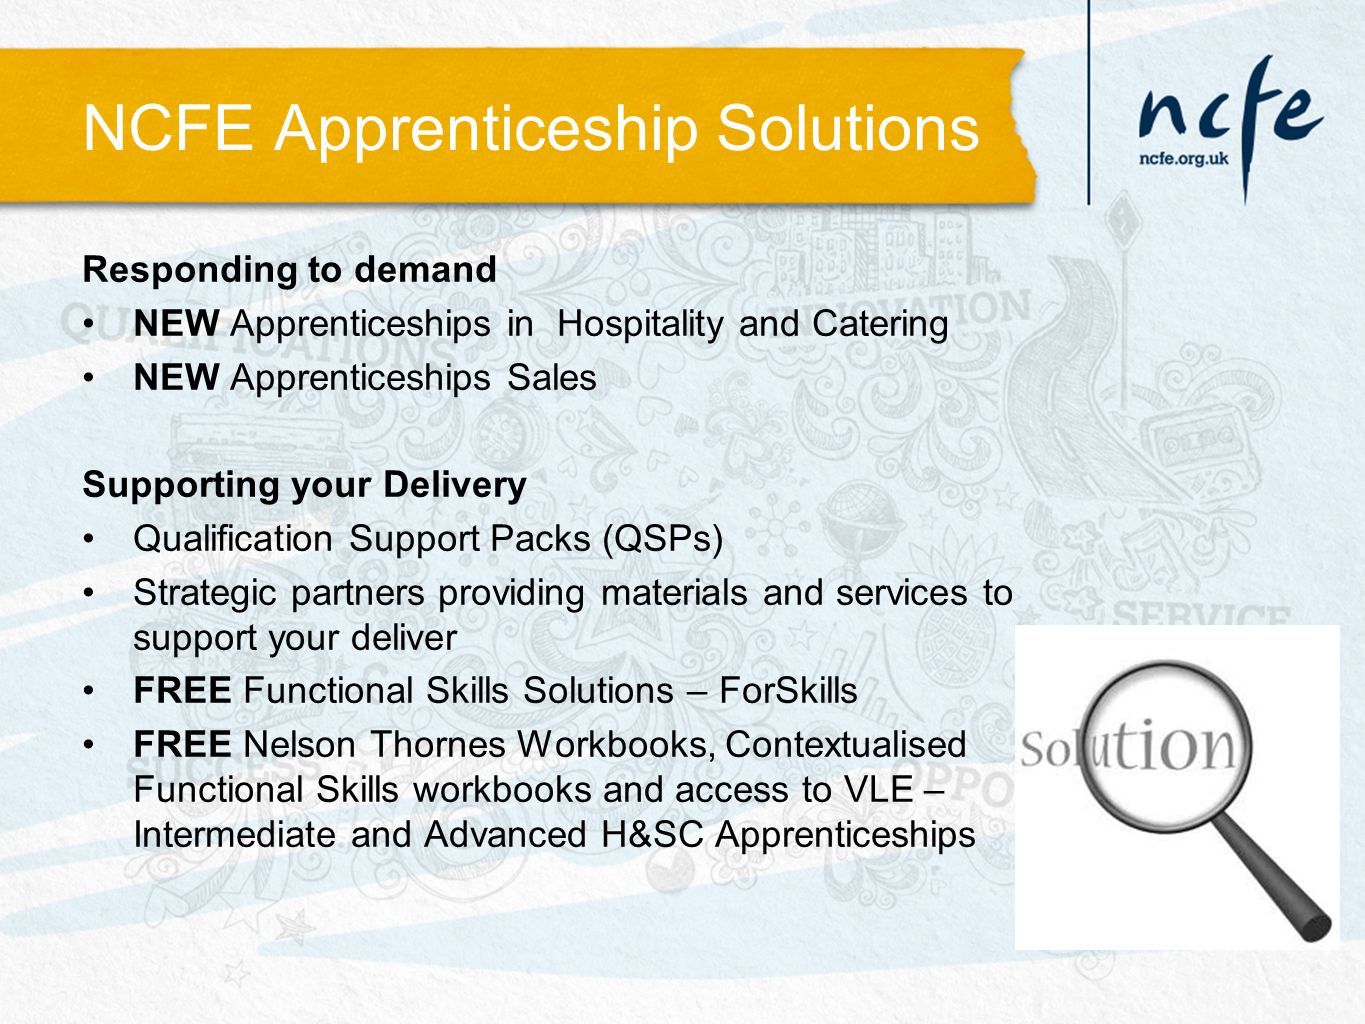 NCFE Apprenticeship Solutions Responding to demand NEW Apprenticeships in Hospitality and Catering NEW Apprenticeships Sales Supporting your Delivery